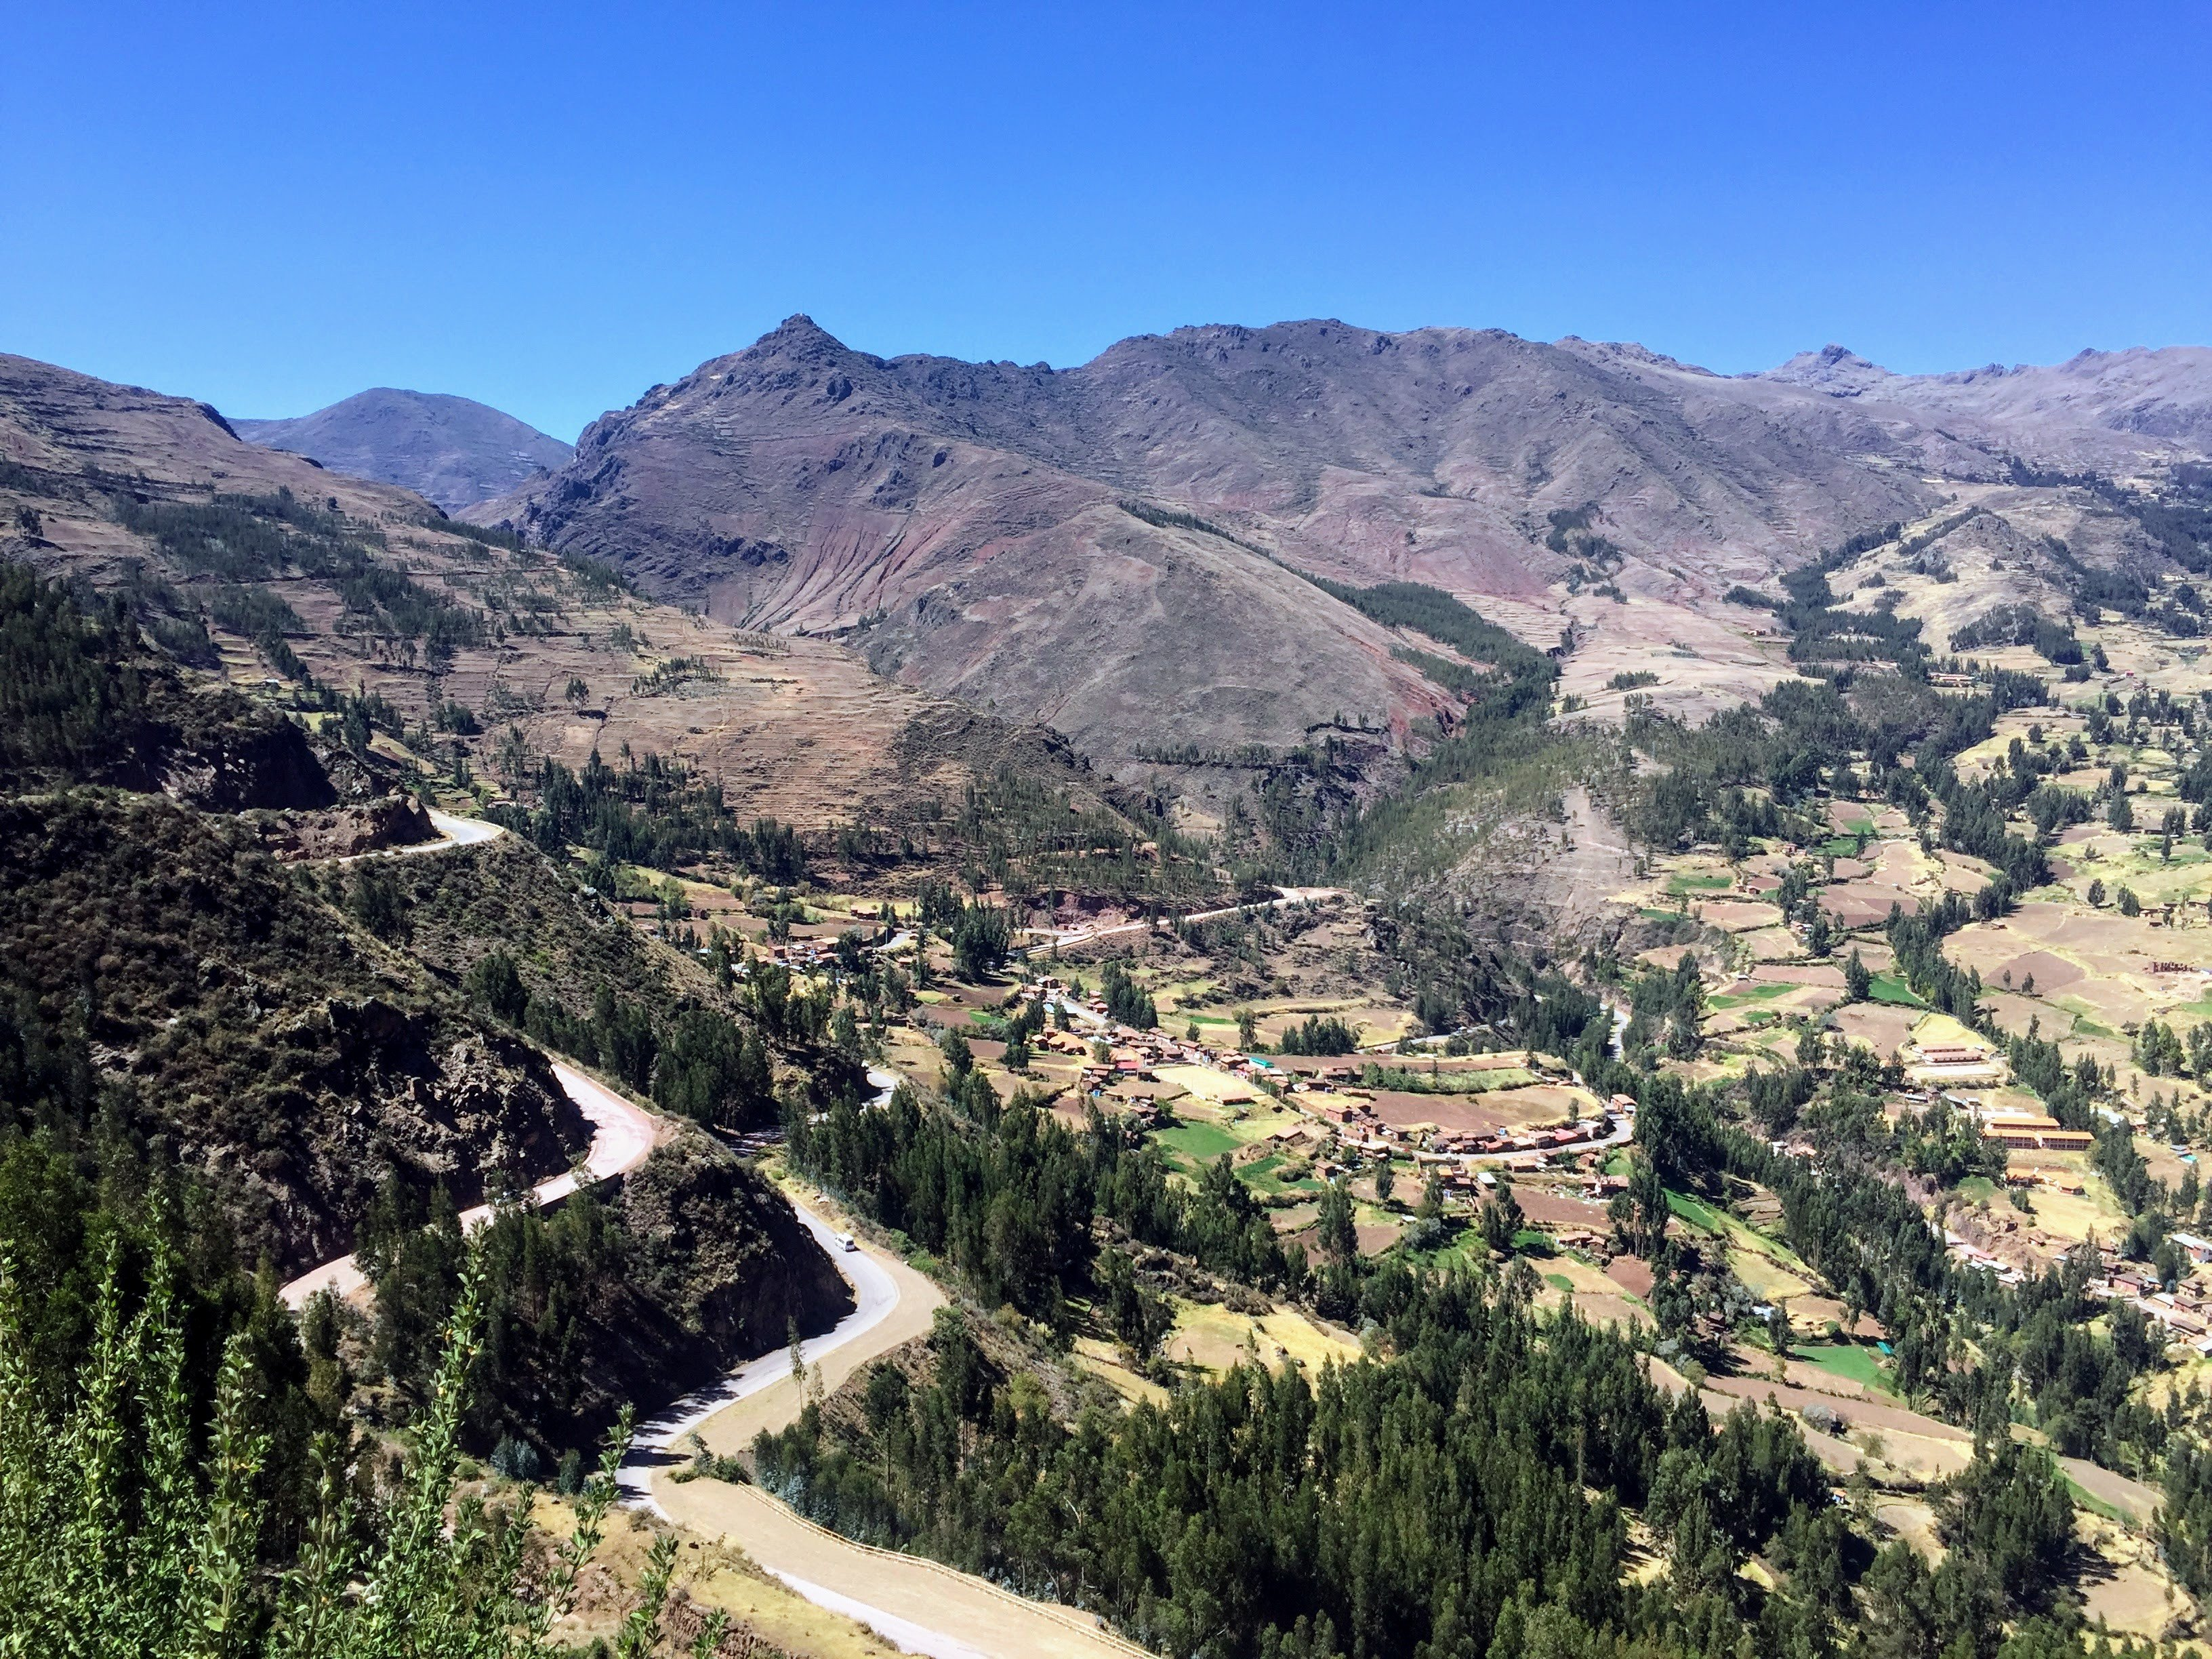 View of Pisac, Peru from the Pisac ruins